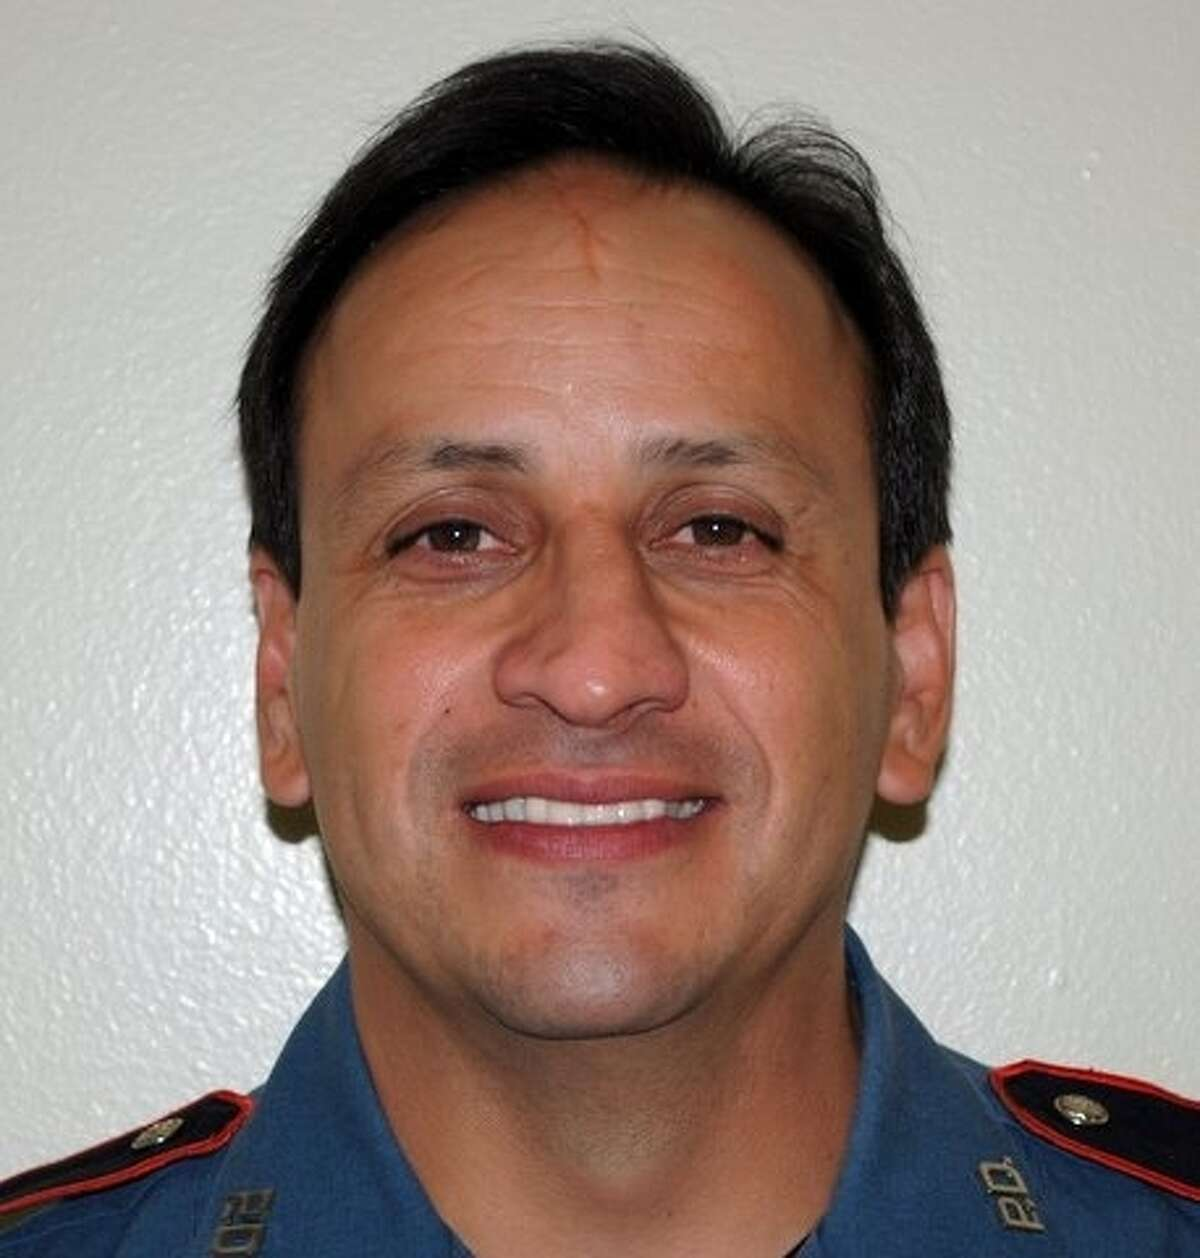 Richard Cano, 46, was charged with extortion.